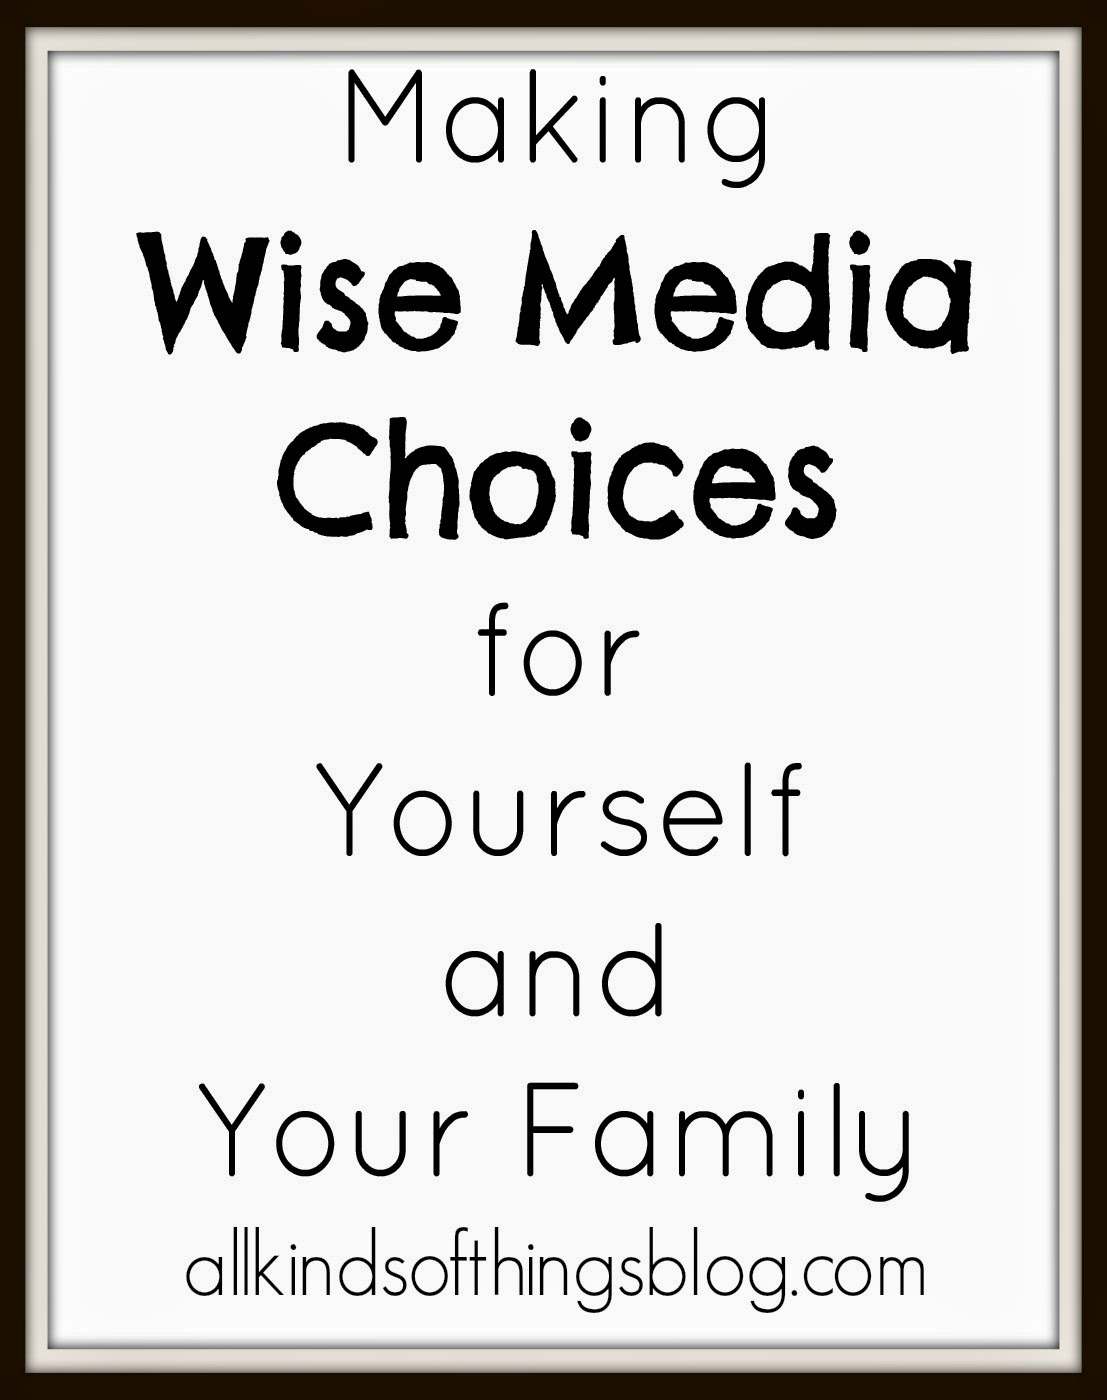 Wise Media Choices